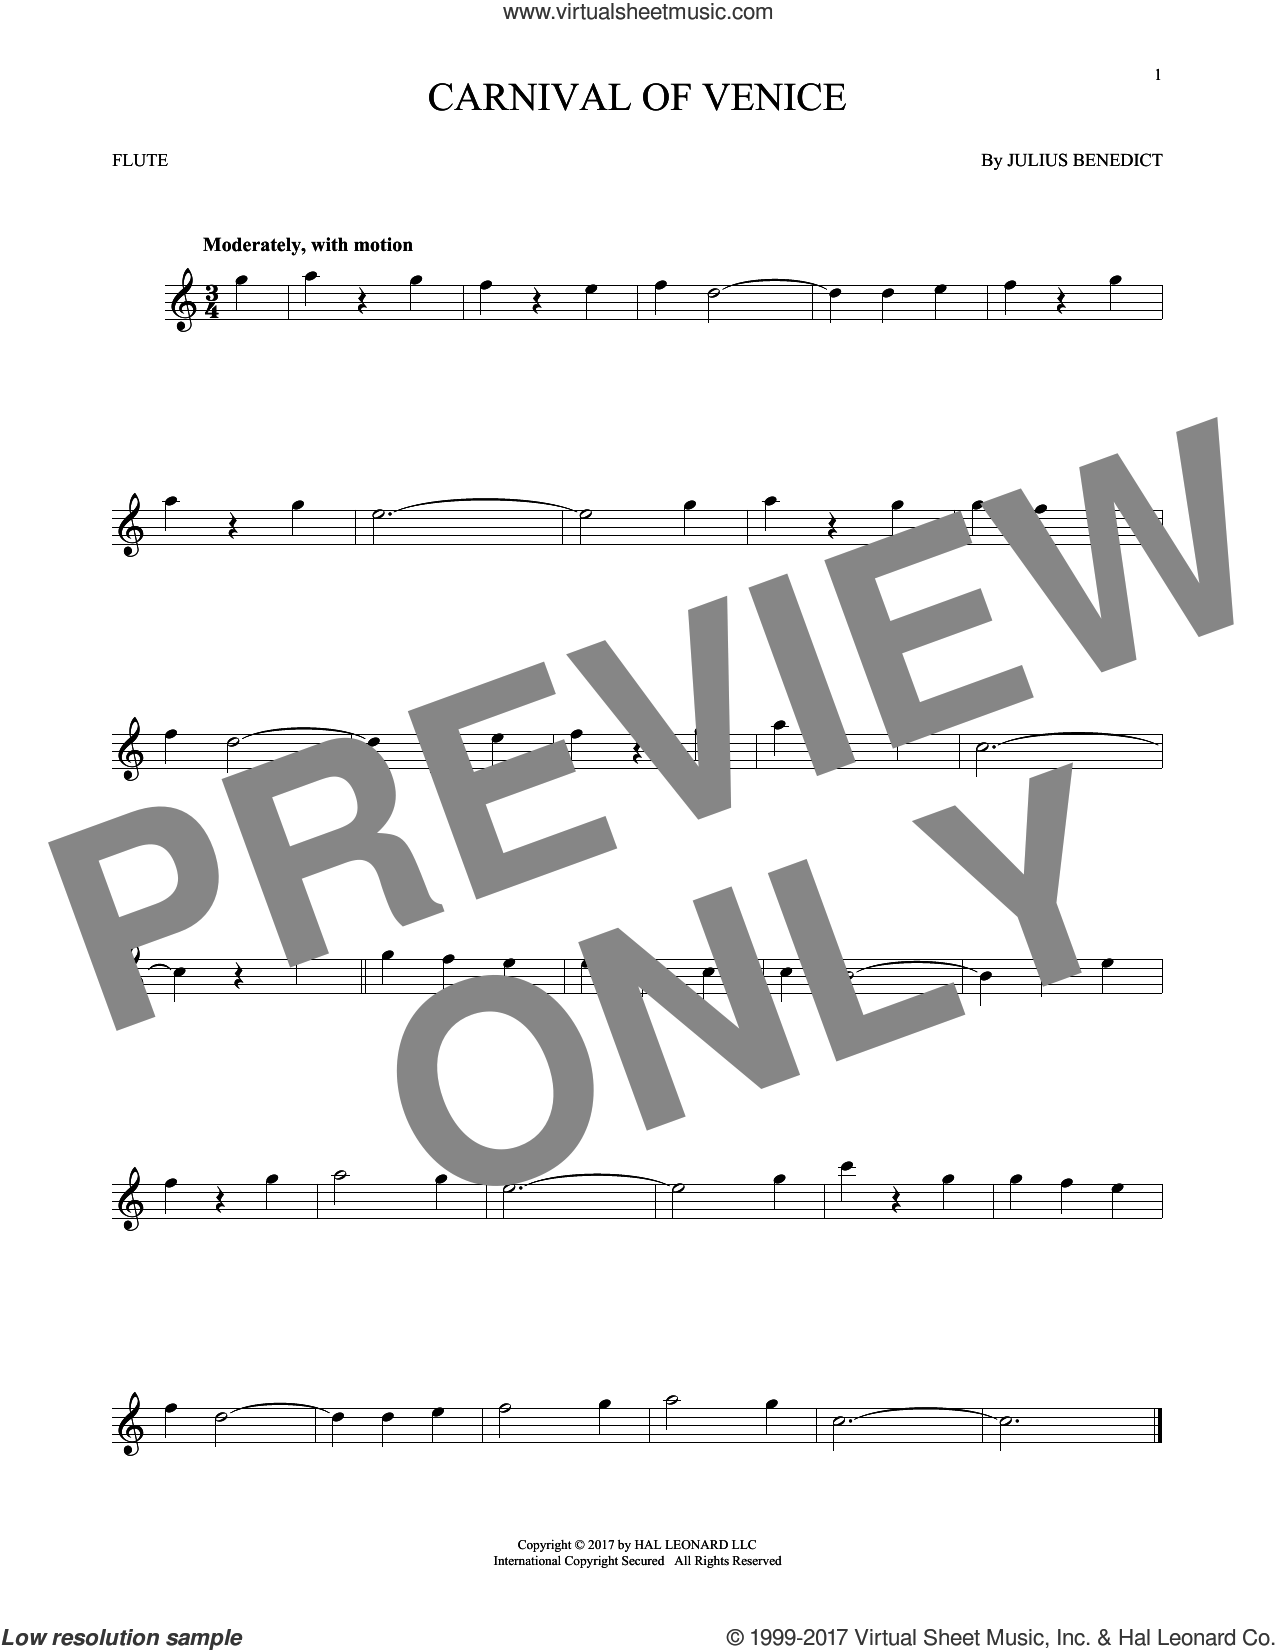 Carnival Of Venice sheet music for flute solo by Julius Benedict, intermediate